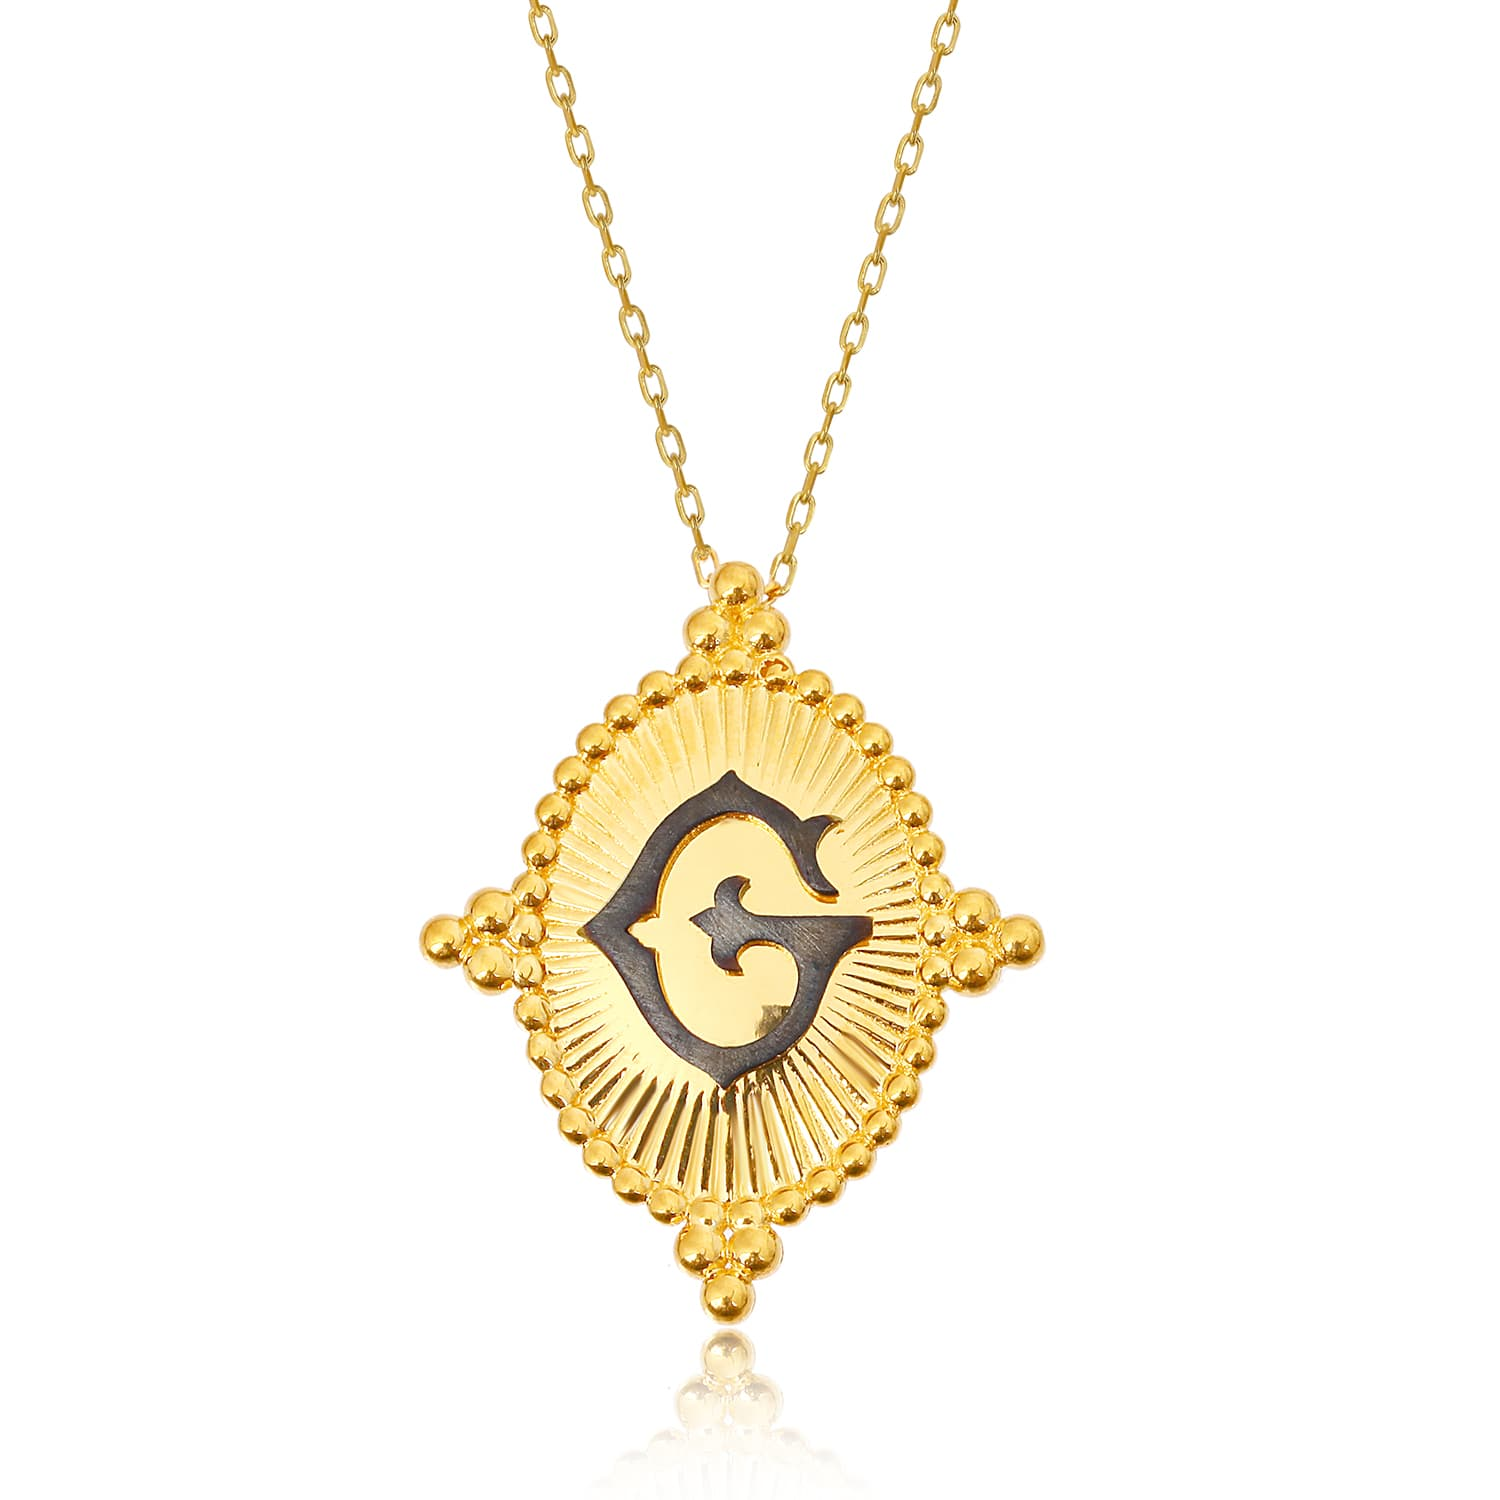 24K gold plated letter G necklace